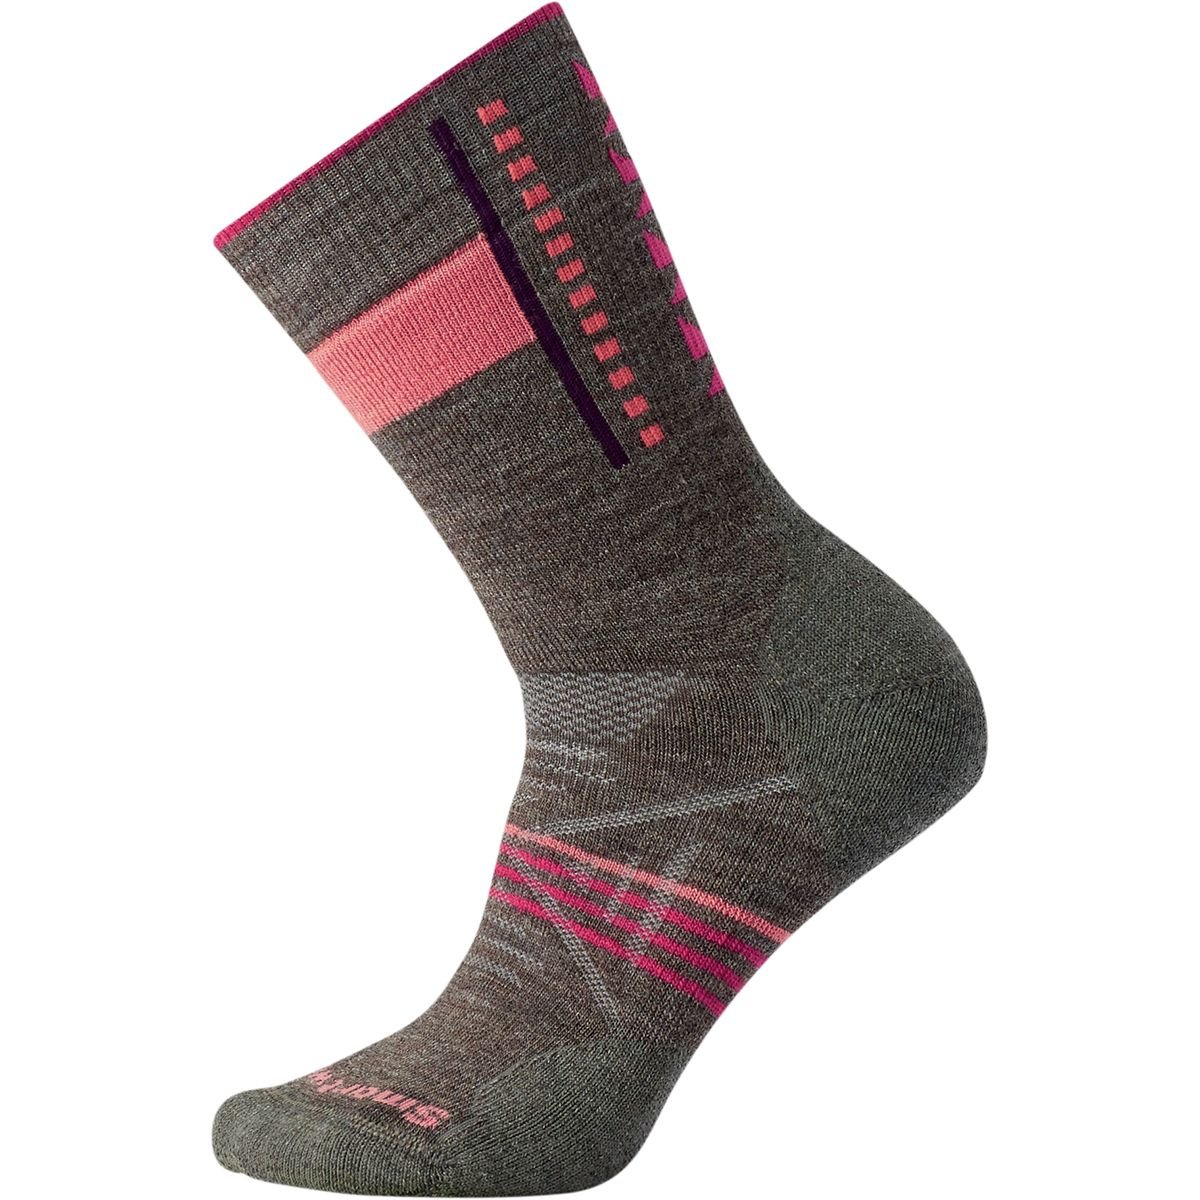 Smartwool Women's PhD Outdoor Light Pattern Crew Socks (Taupe) Small SW000768-236-S